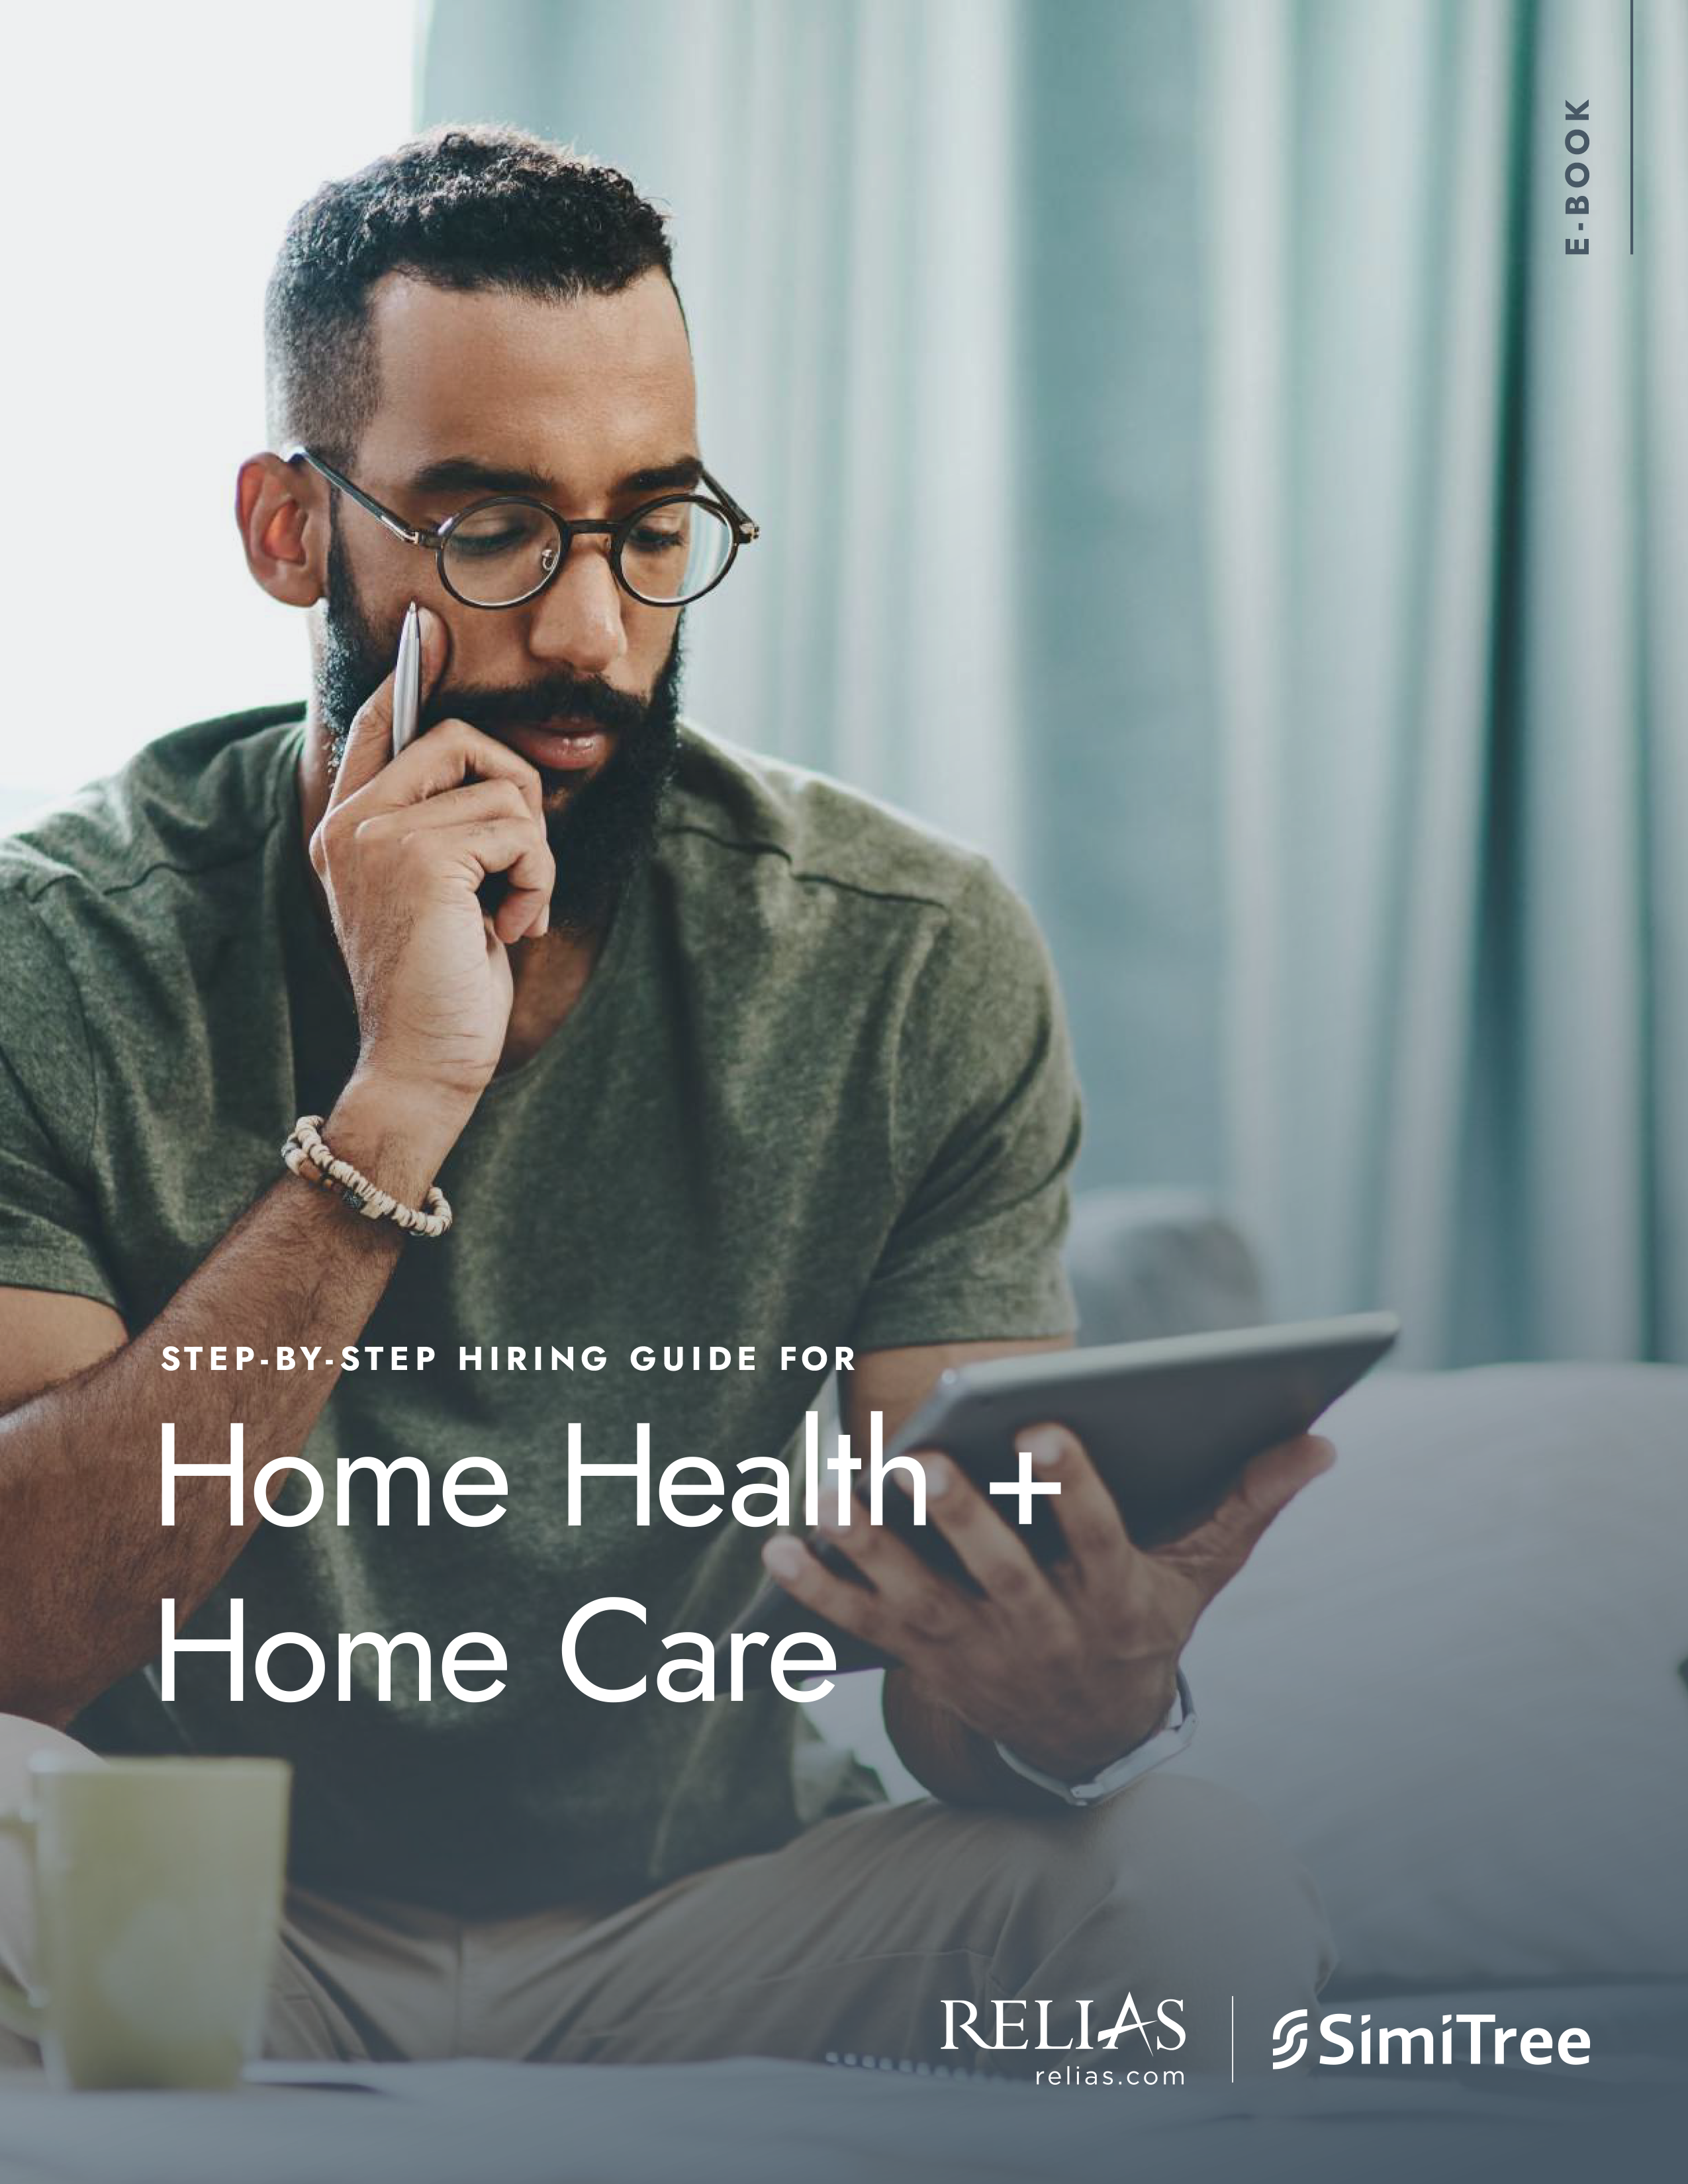 Home Health and Home Care Hiring Guide